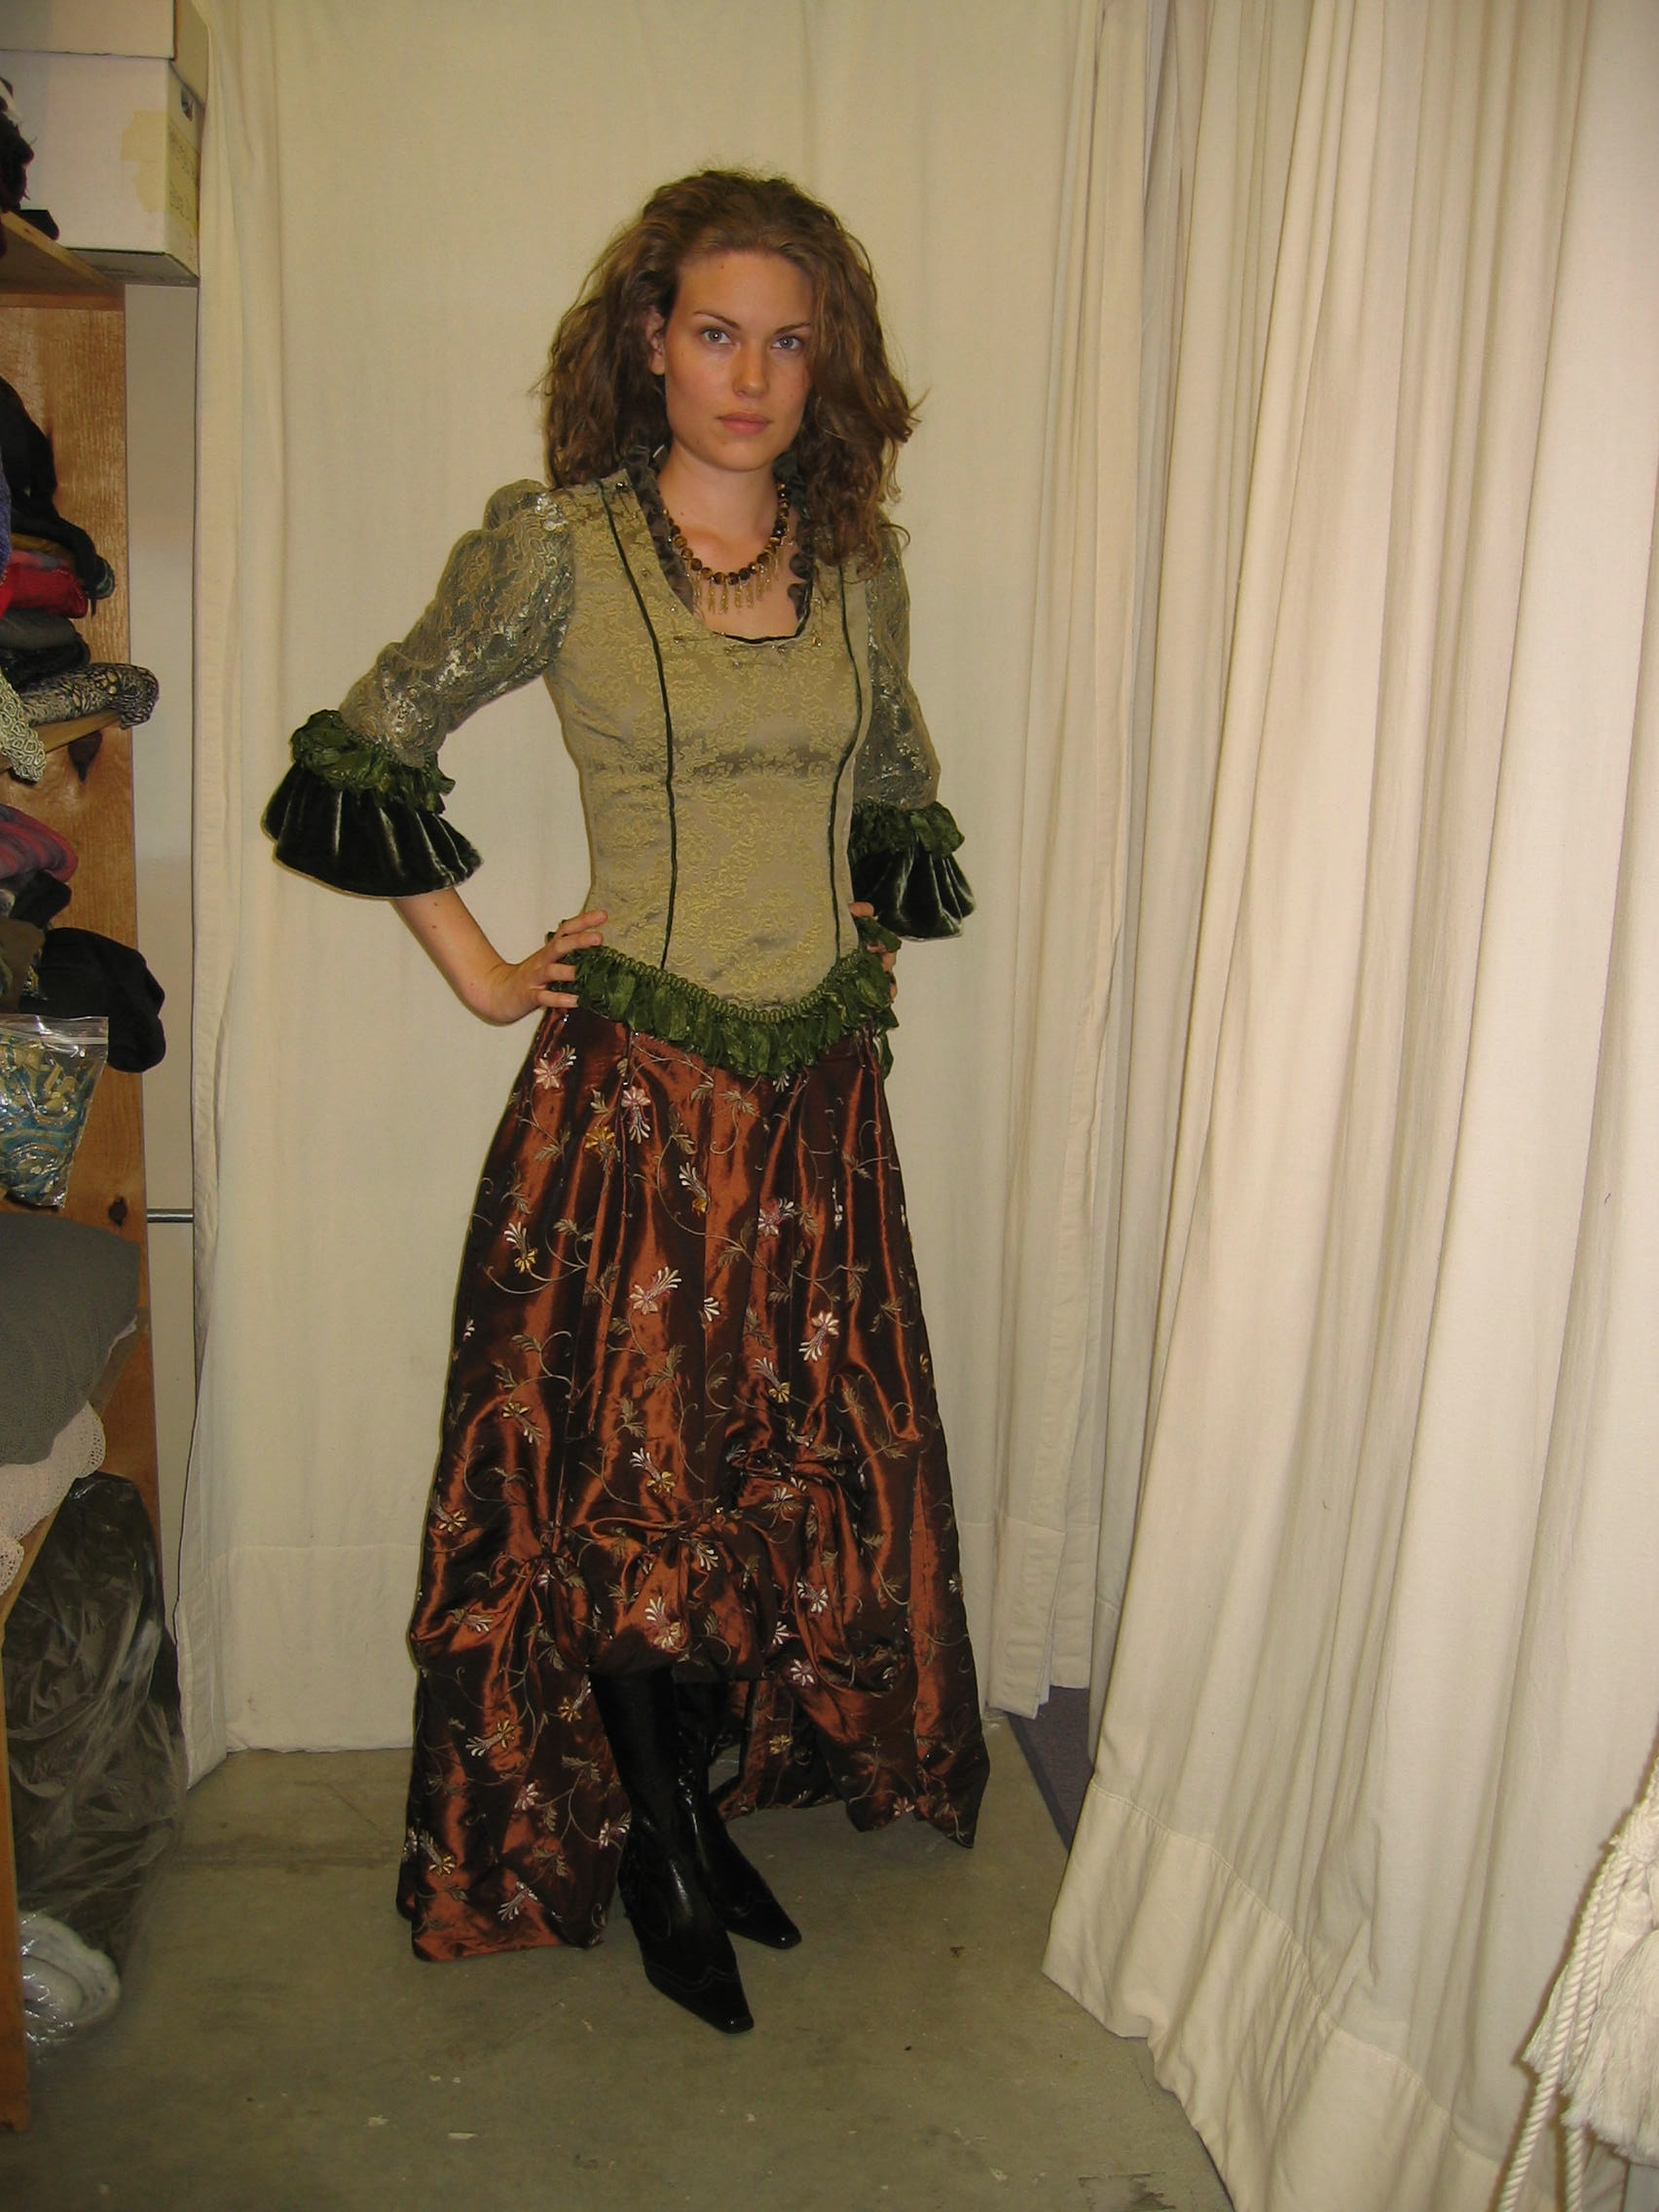 Captain Meyers - Bodice and Skirt